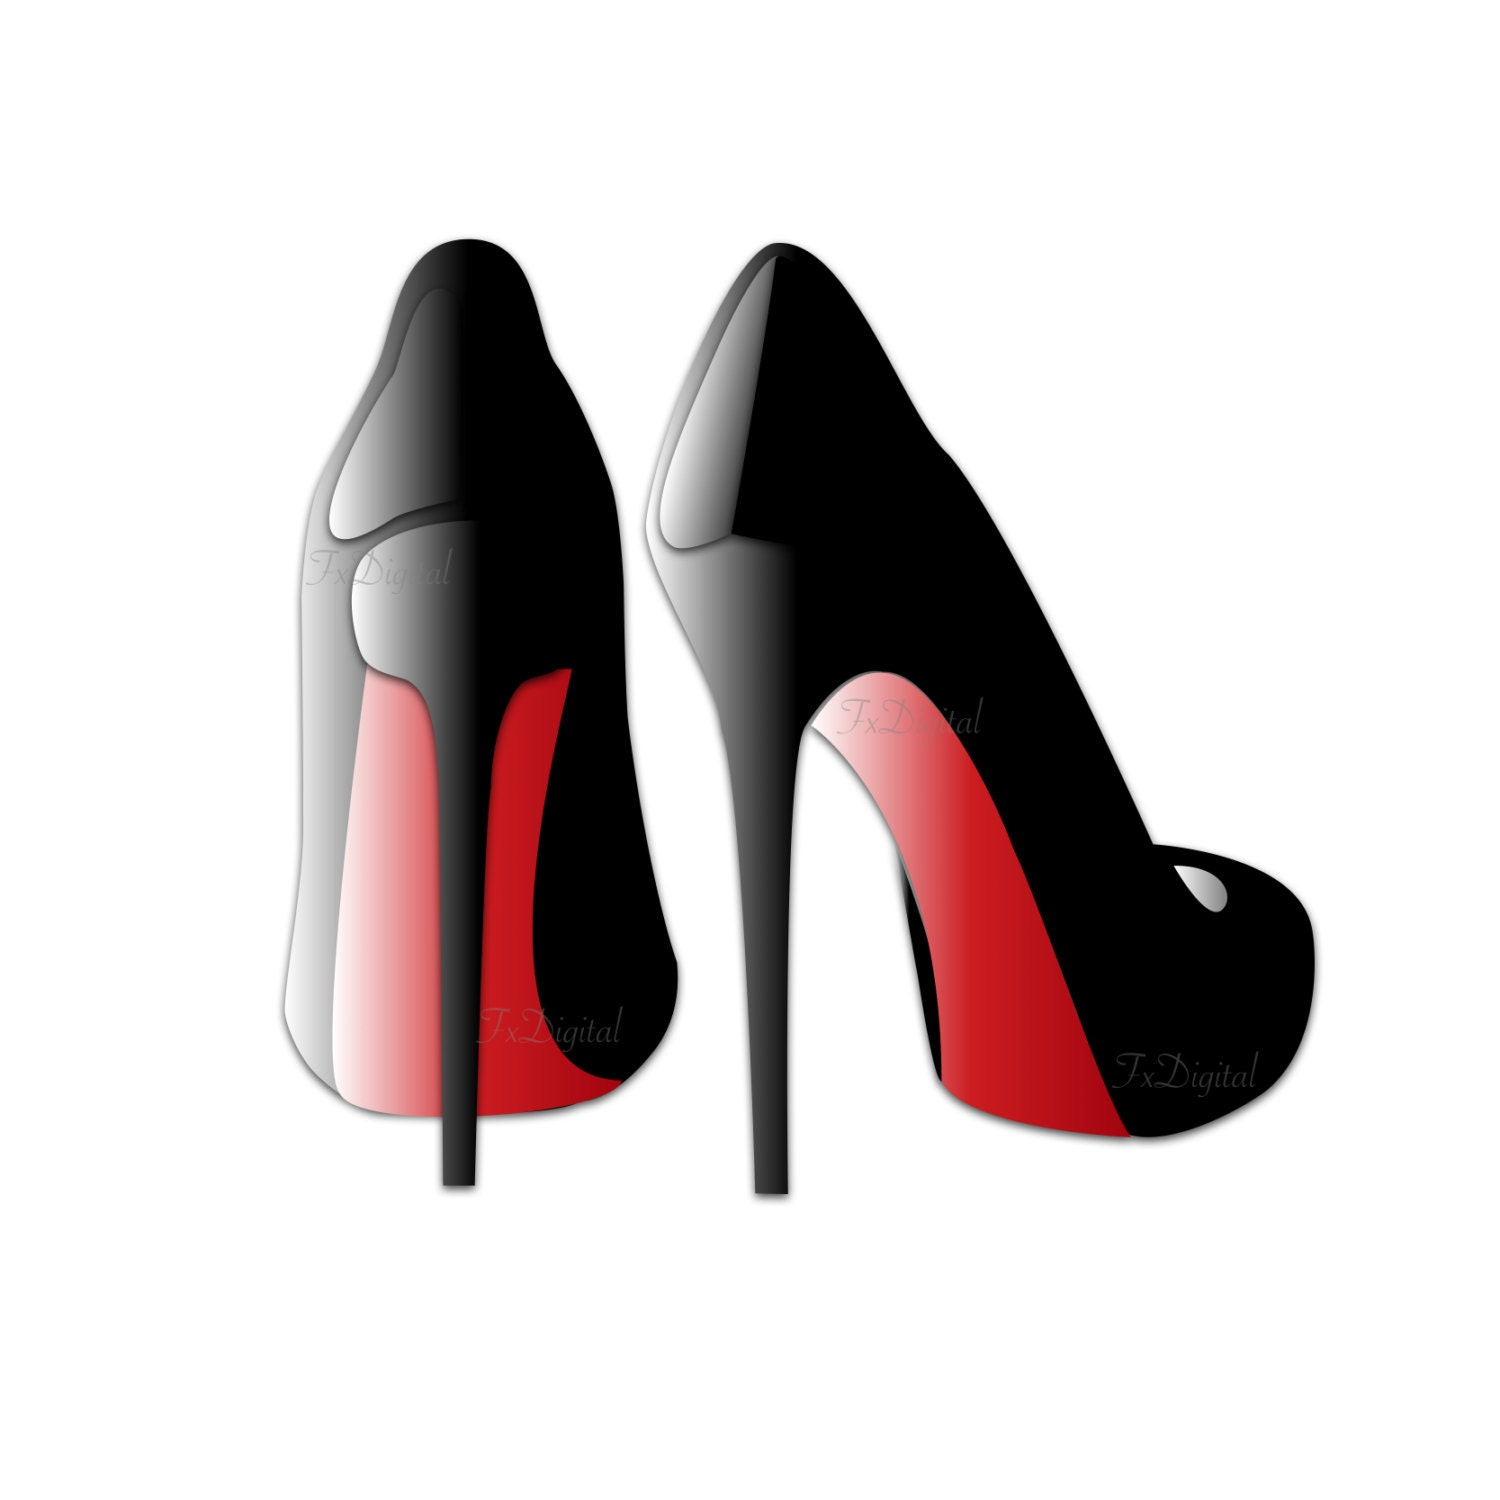 Clip Art Heels Clipart heels clipart etsy red high clip art sexy graphic shoe black vector transparent background image logo